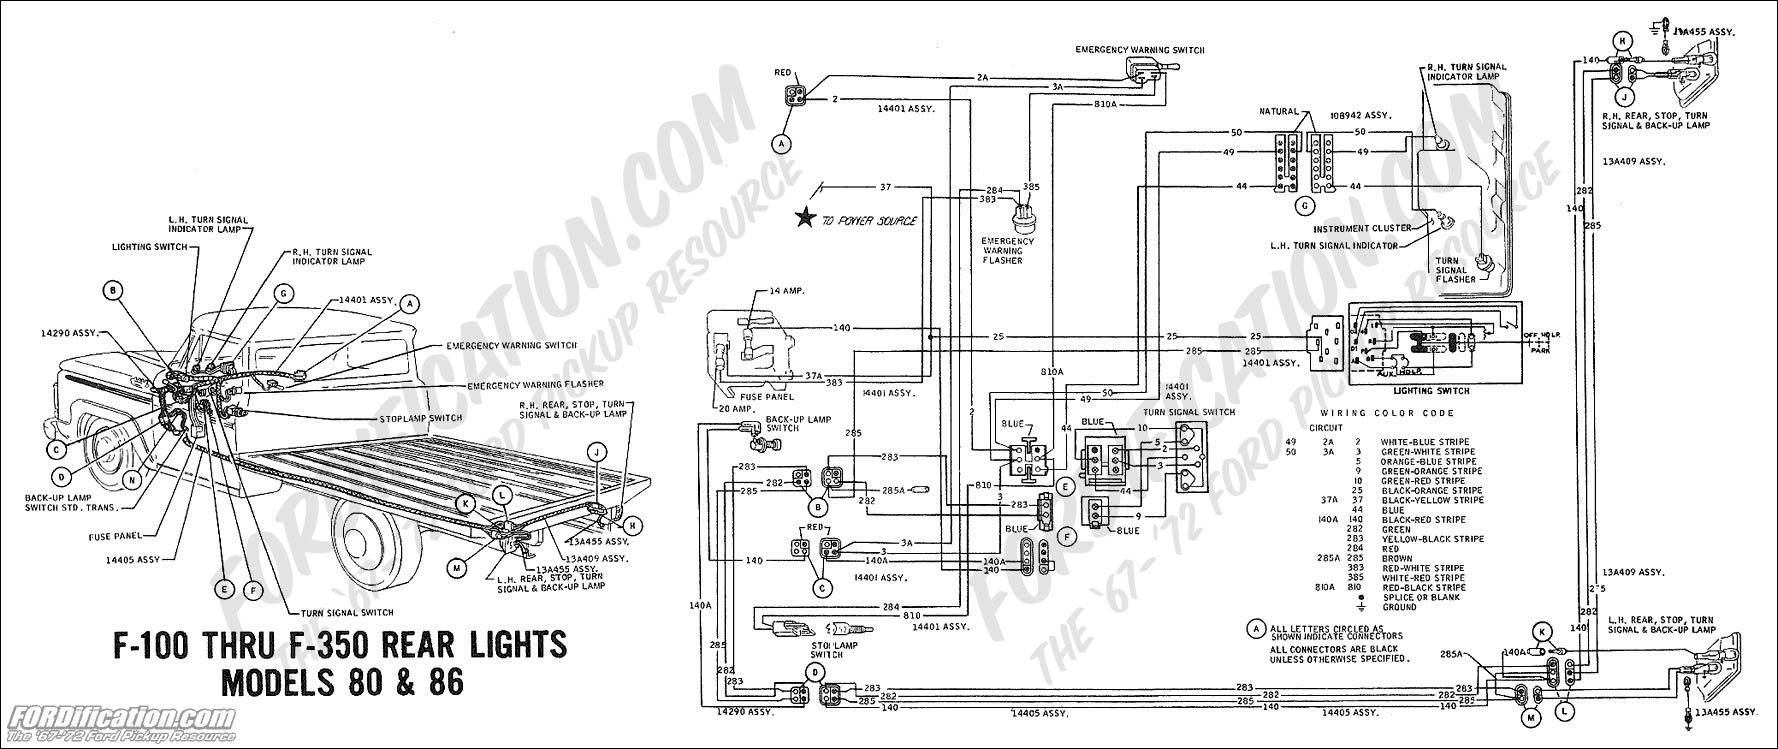 wiring_69rearlights mdls80 86 ford truck technical drawings and schematics section h wiring 1973 ford truck wiring diagram at aneh.co